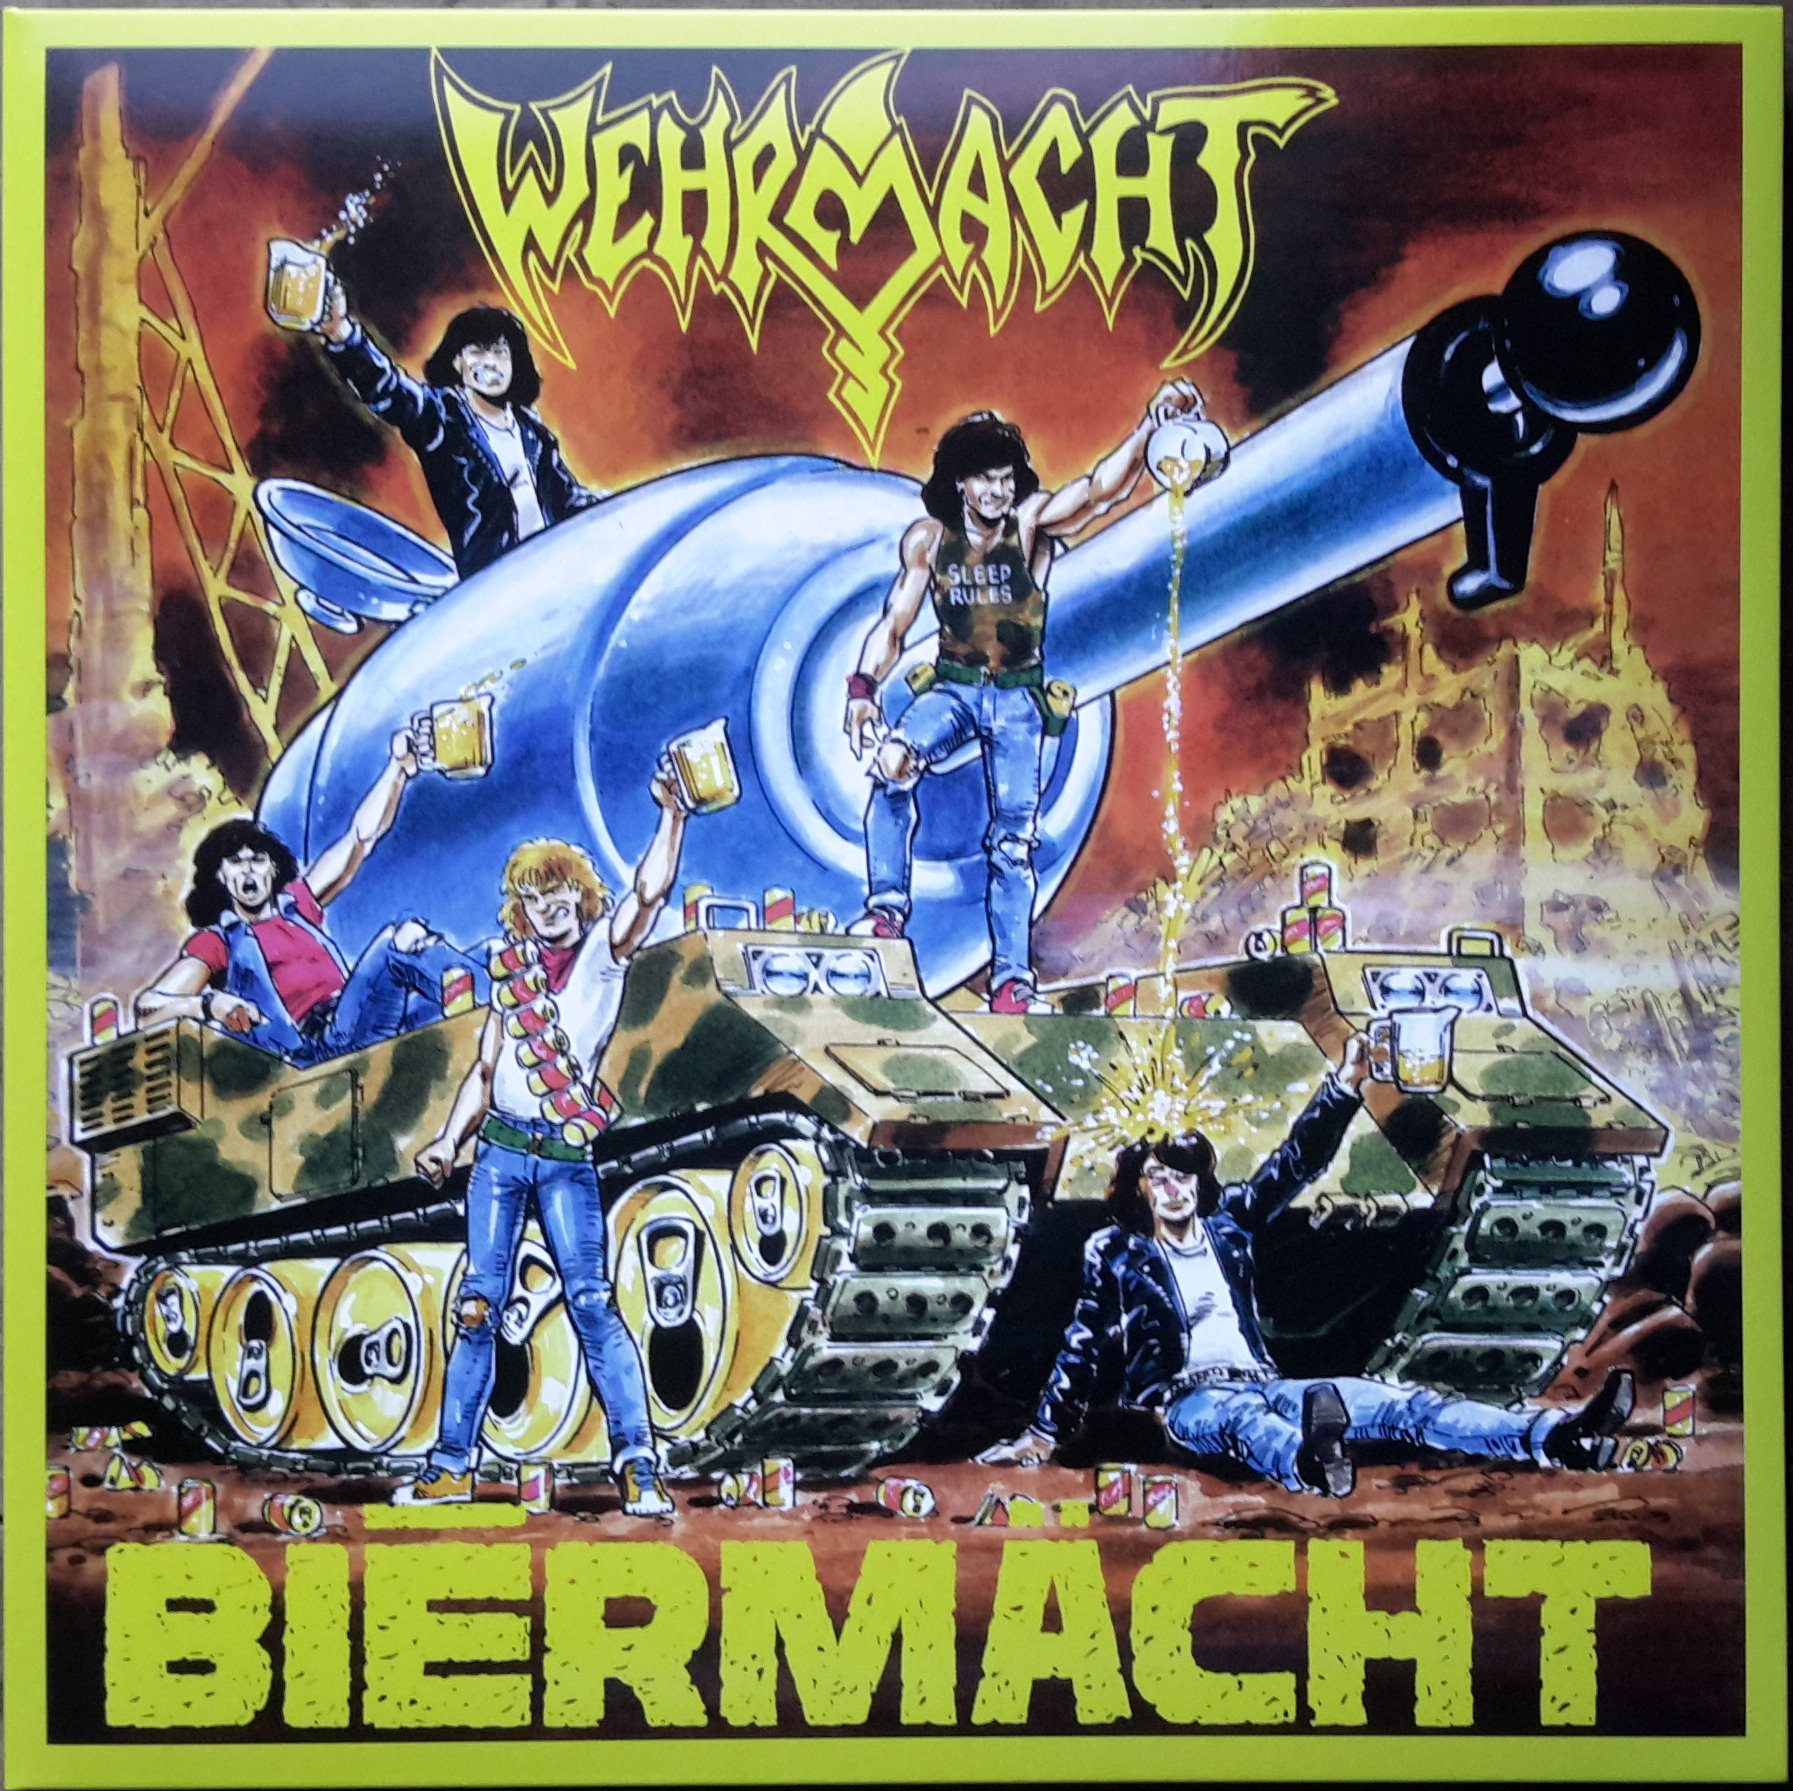 Wehrmacht - The Complete Beer-Soaked Collection 1985-1989 2014